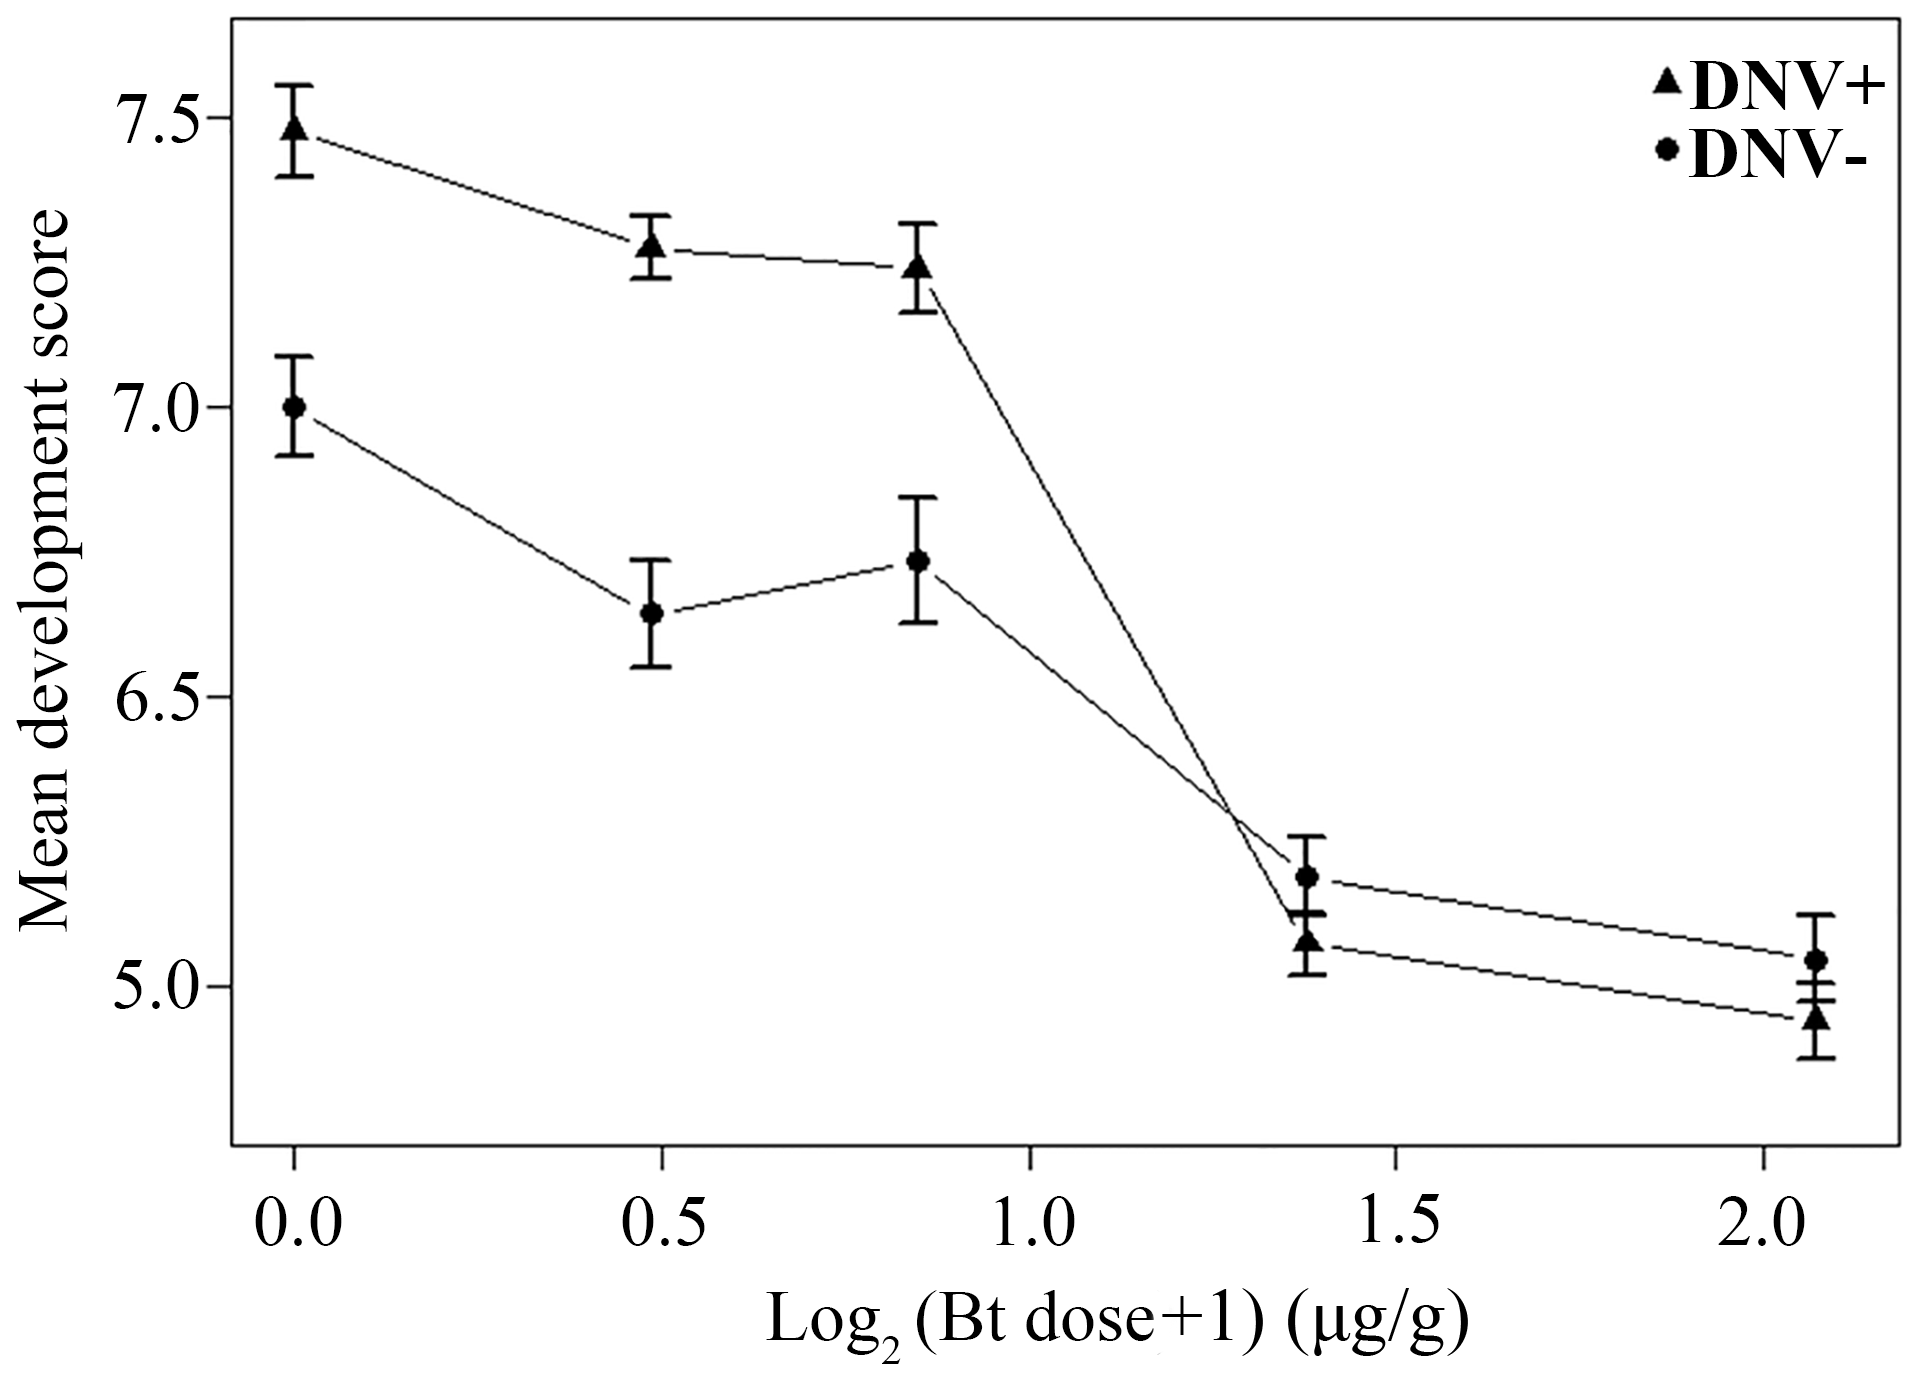 Relationship between dose of Bt toxin (log<sub>2</sub>-transformed) and mean development score for DNV+ and DNV- cotton bollworm larvae (averaged over days 4 to 9 post-challenge).